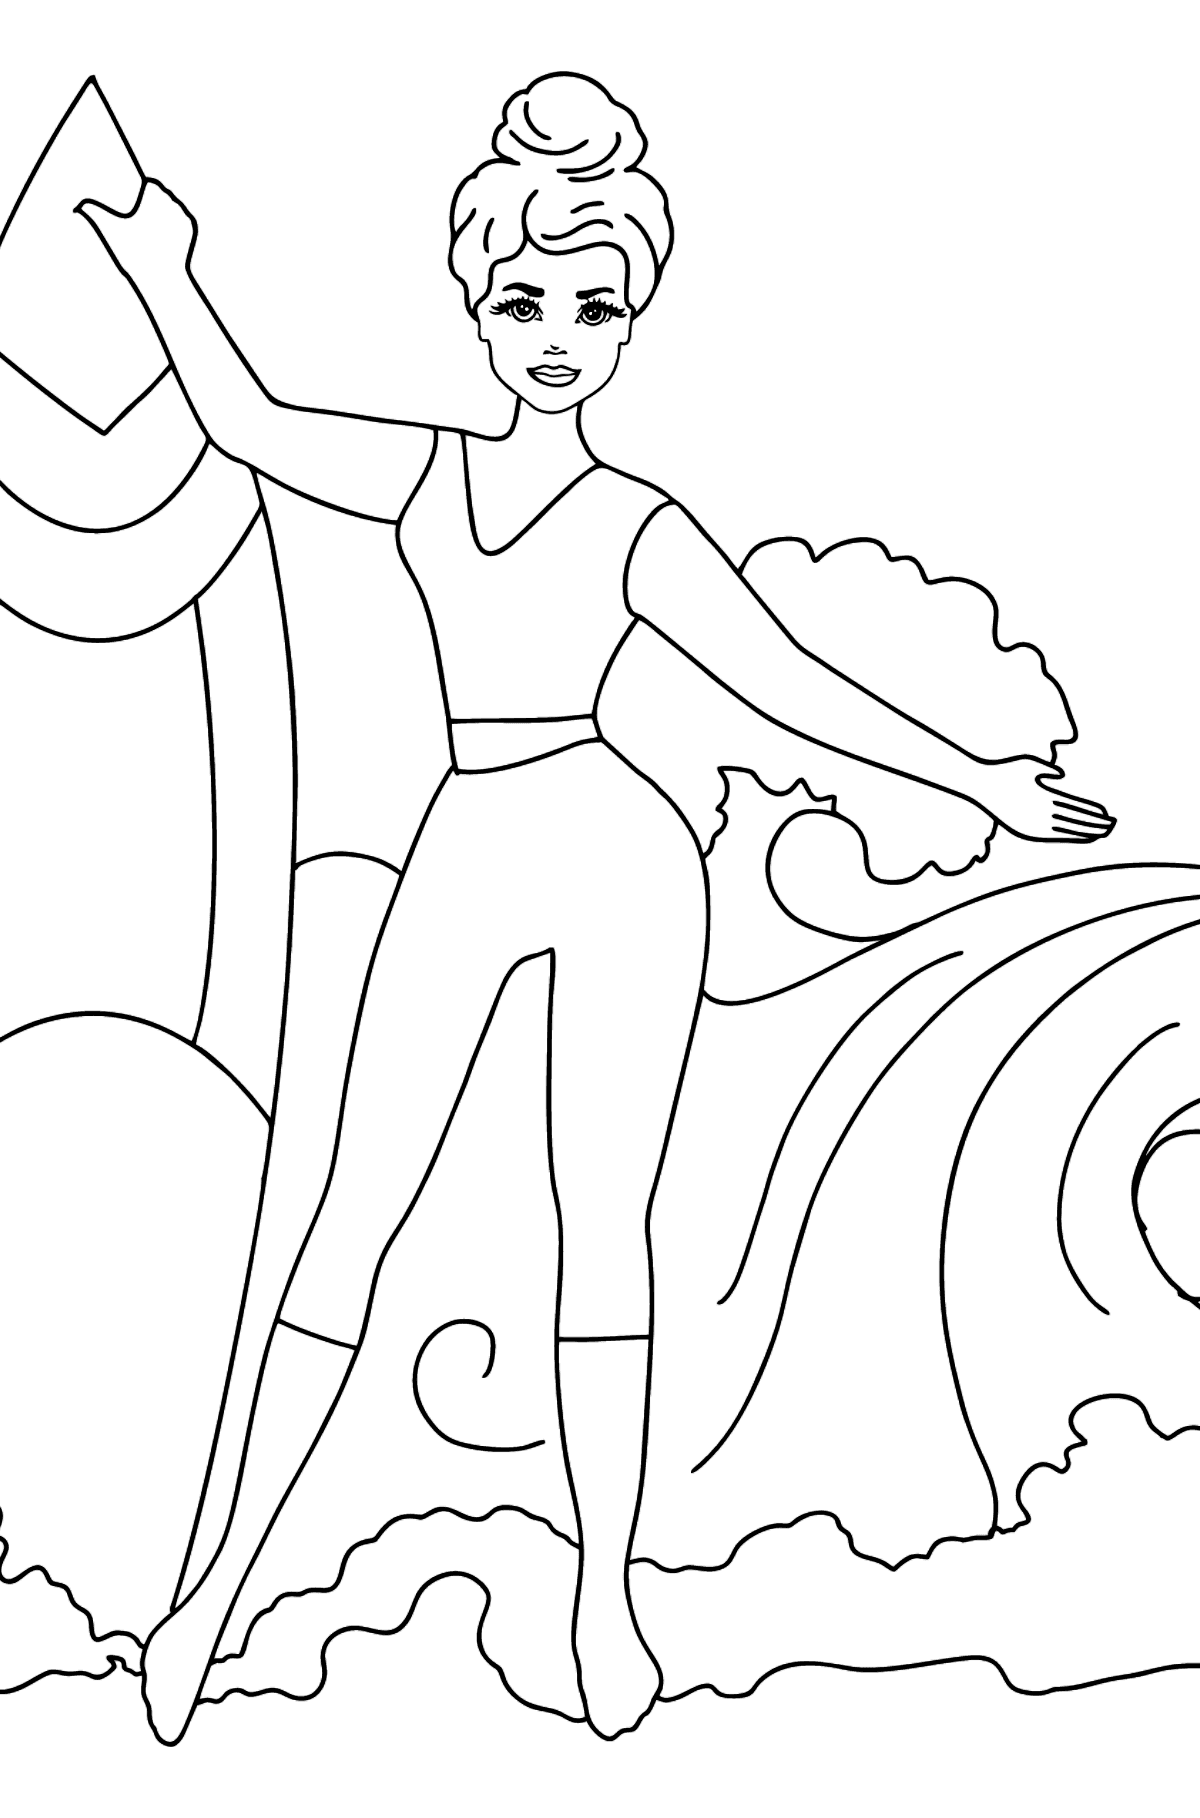 Barbie Surfer Doll coloring page - Coloring Pages for Kids